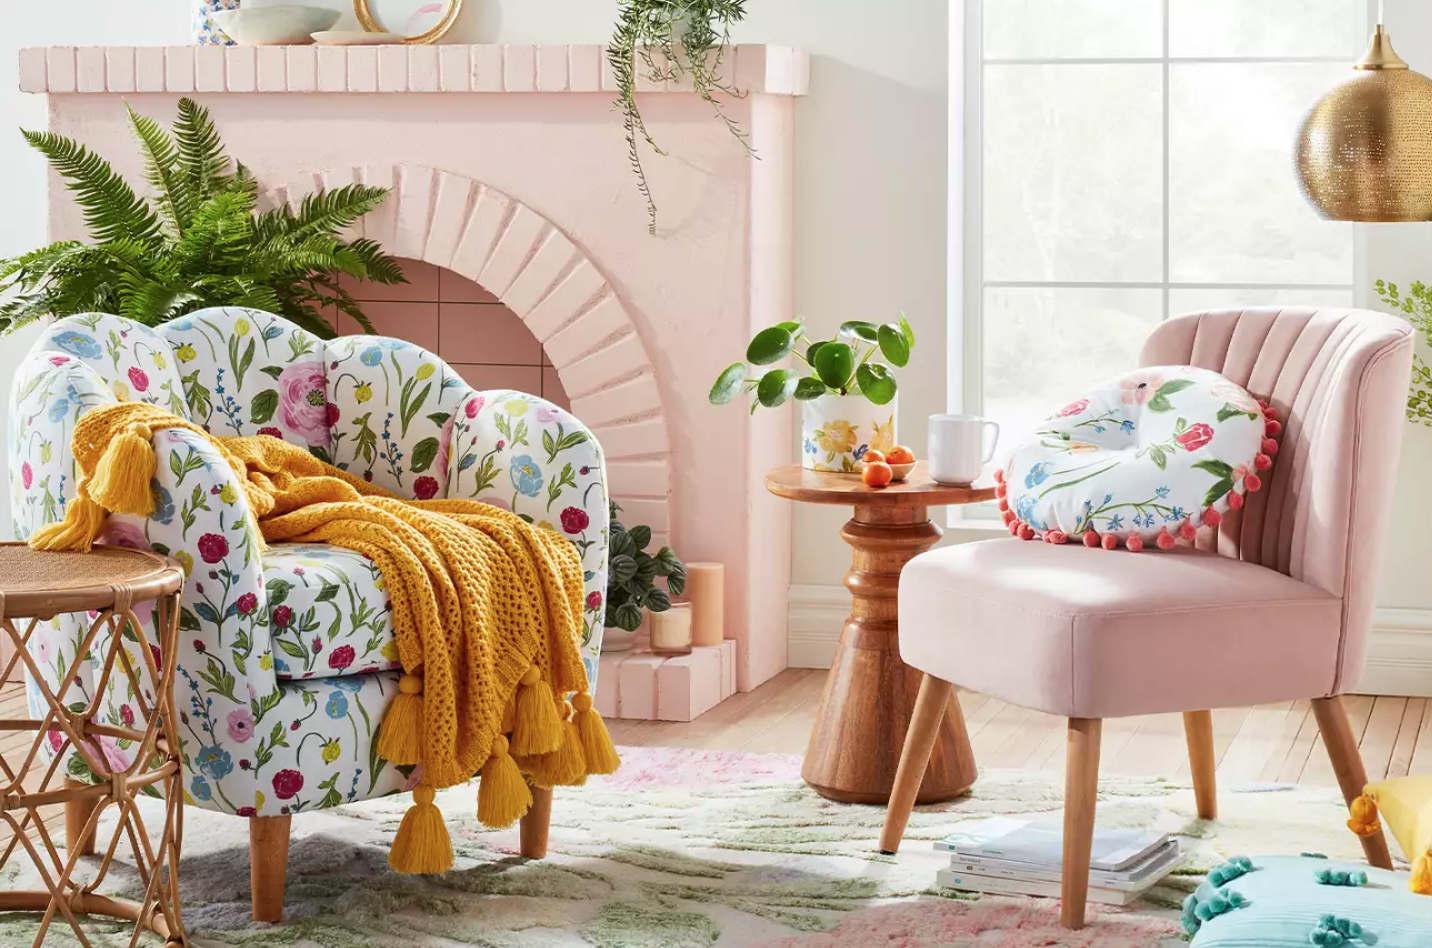 Shopping The Best Spring Home Decor At Target Rachel Balmforth